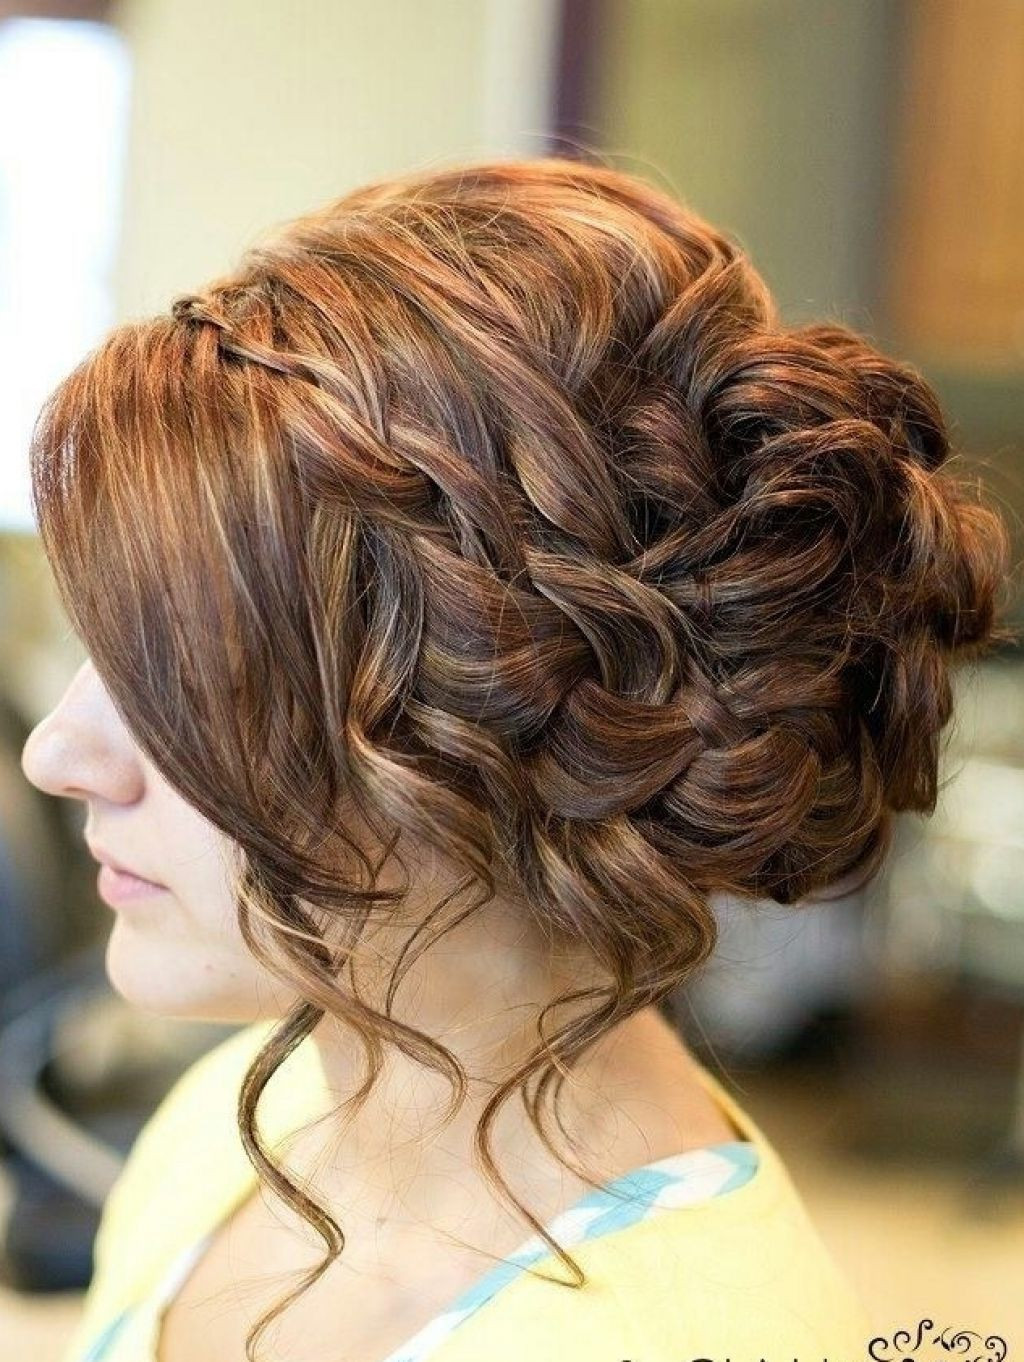 Prom Hairstyles  14 Prom Hairstyles for Long Hair that are Simply Adorable